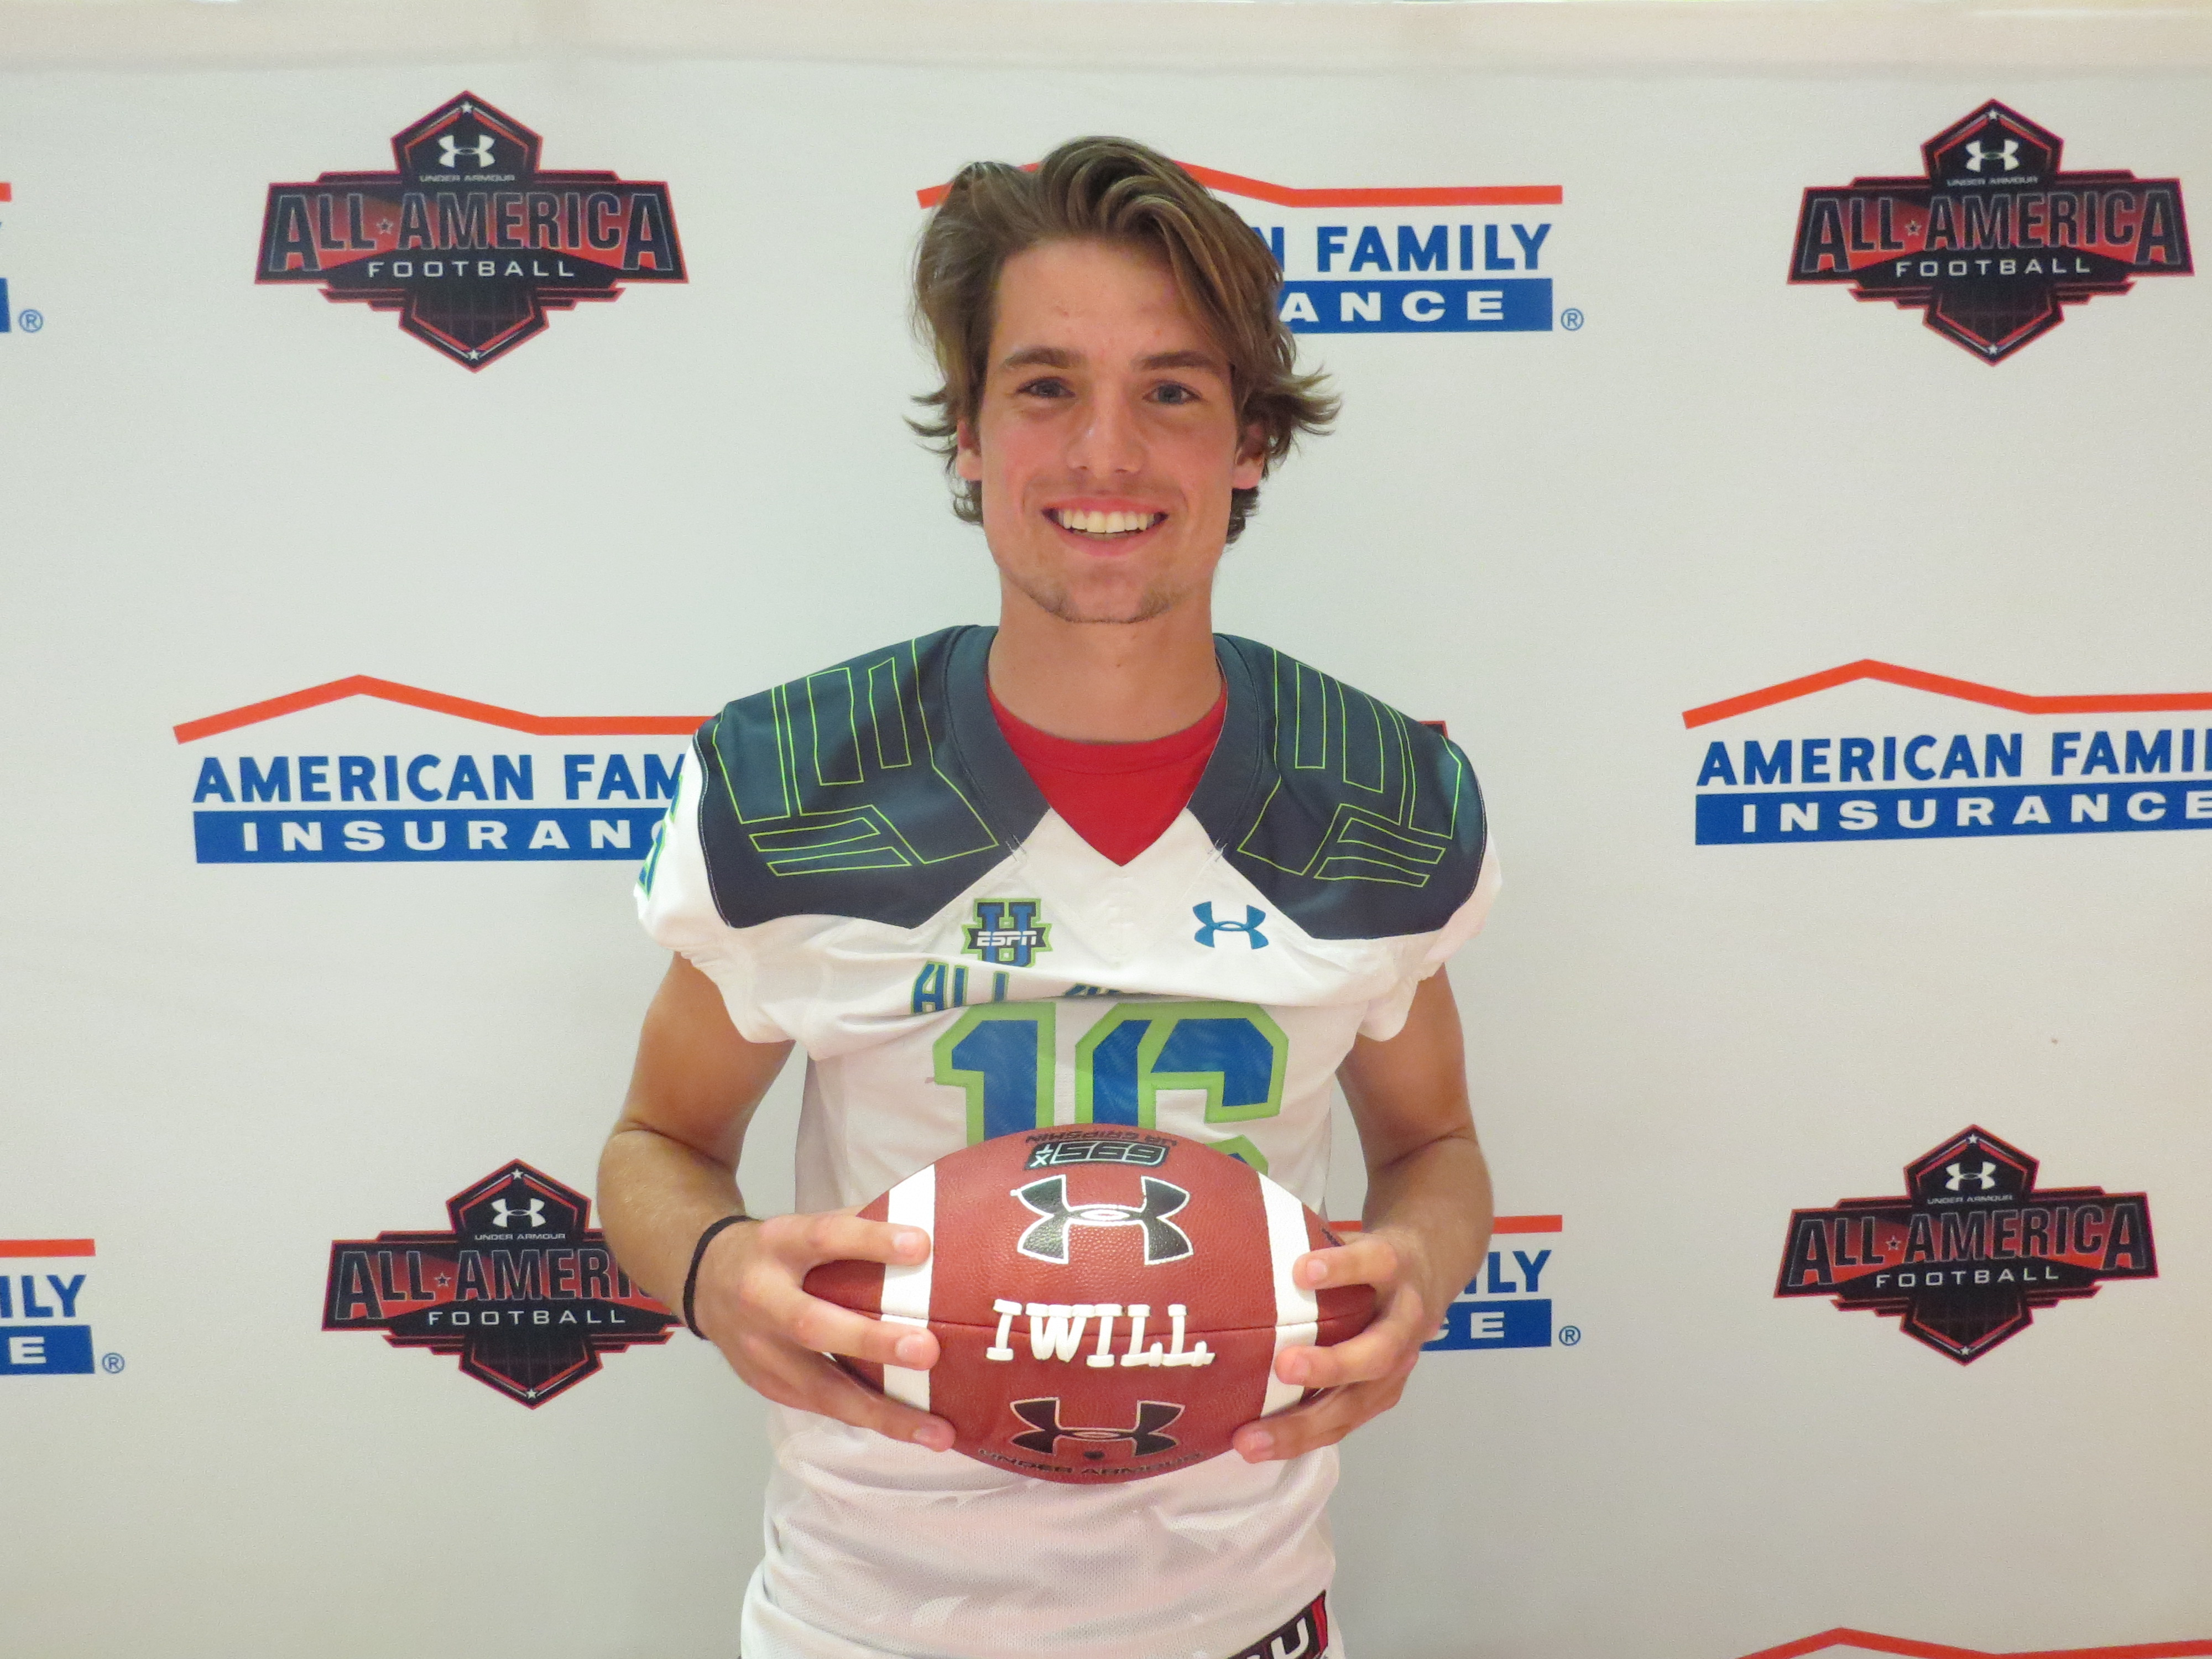 Jack Allison receives his Under Armour All-America jersey (Photo: Intersport)